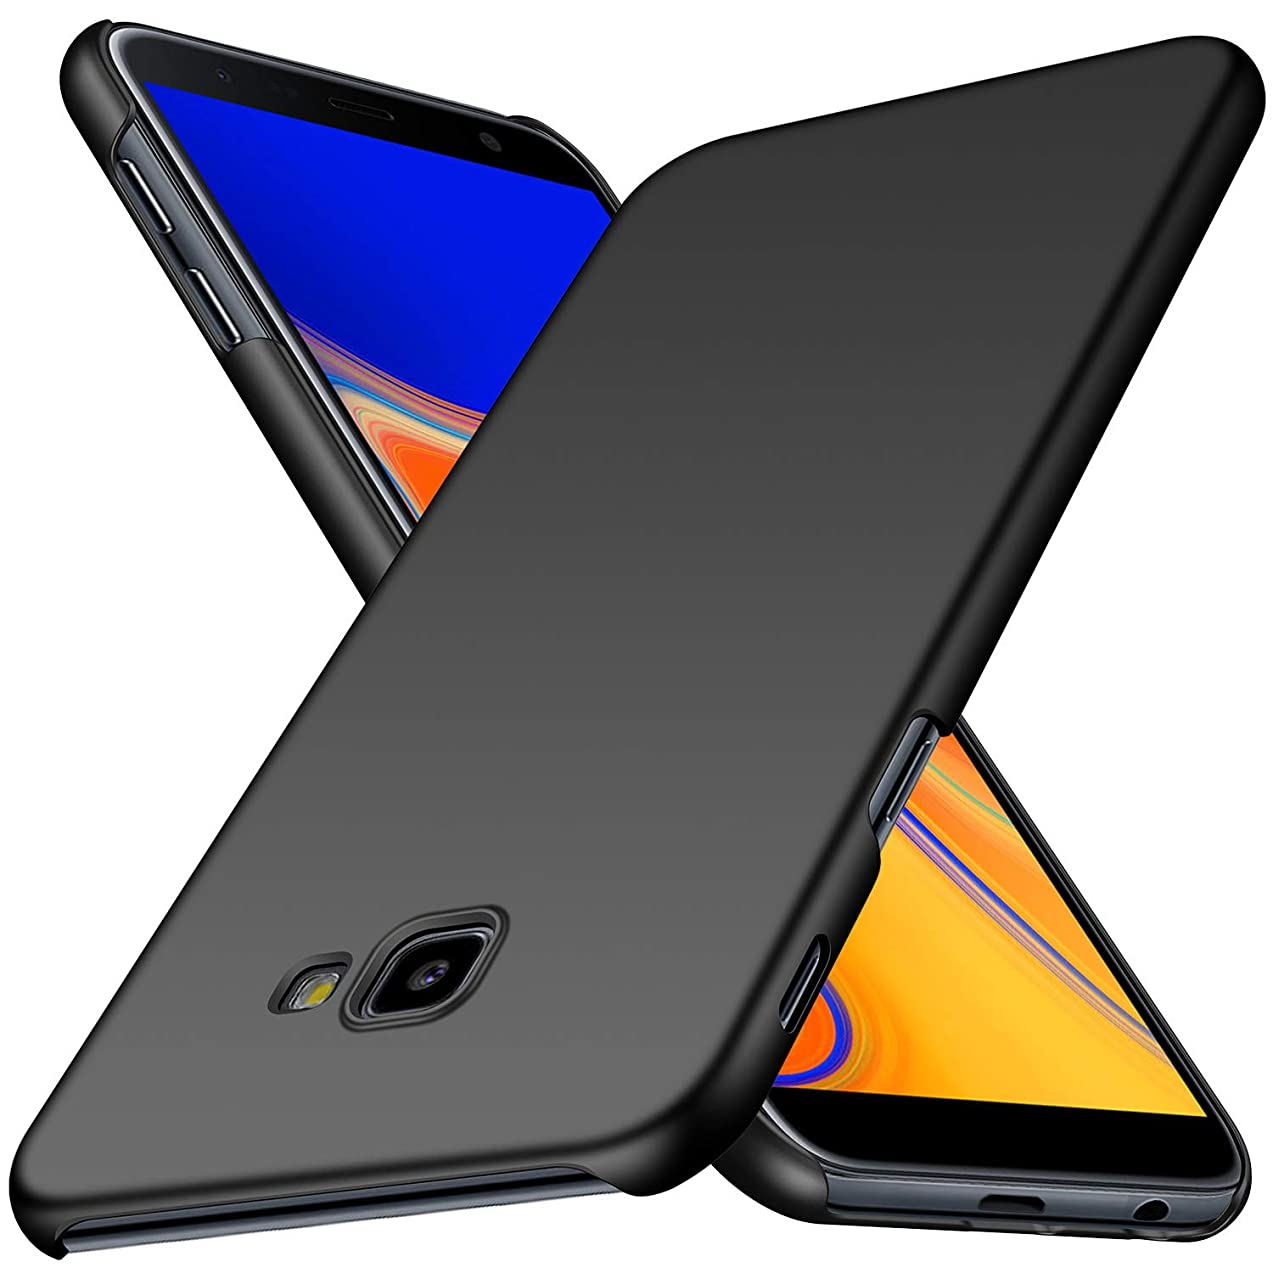 Tyedia Samsung Galaxy J4 Core Case, [Ultra-Thin] [Anti-Fall] [Seamless fit] Slim Design Ultra-Thin Cover, Extreme Touch,Advanced Material Defensive Protection Galaxy J4 Core (Black)